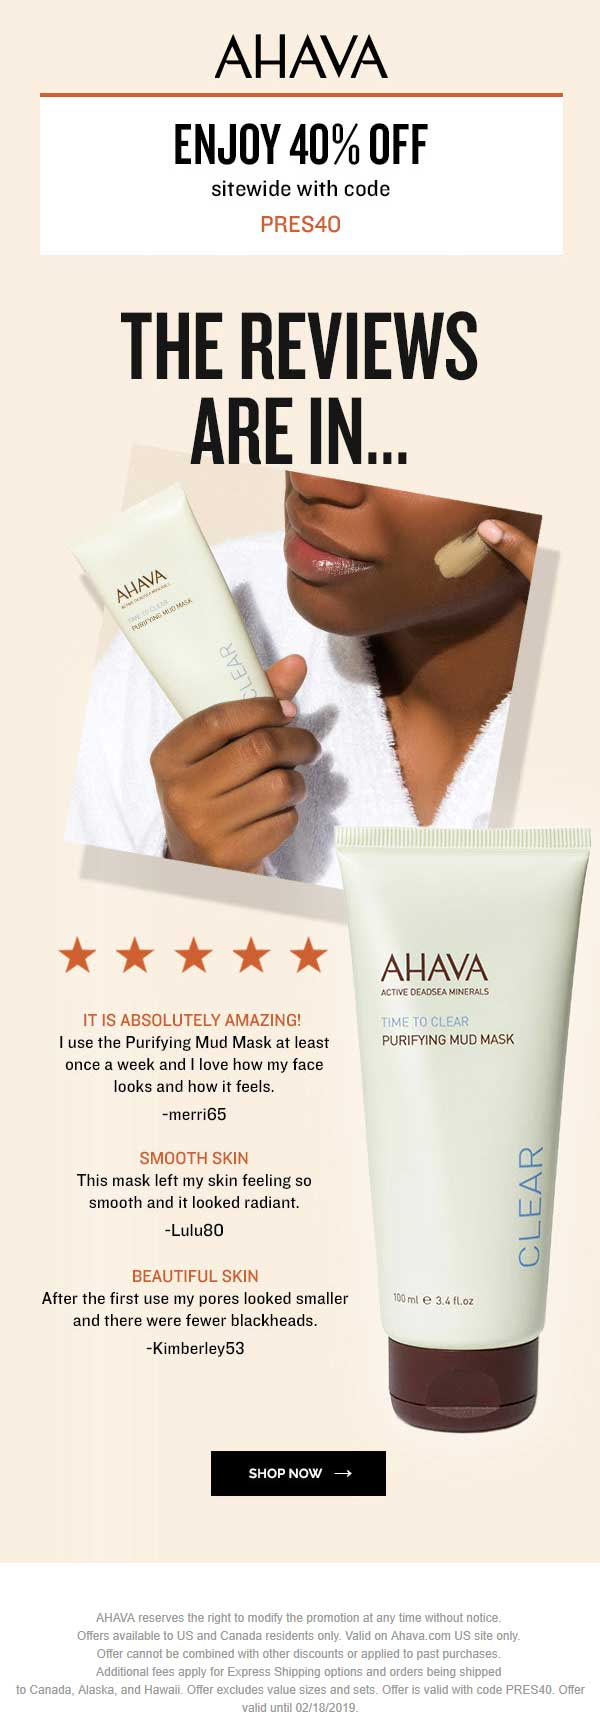 AHAVA coupons & promo code for [January 2021]